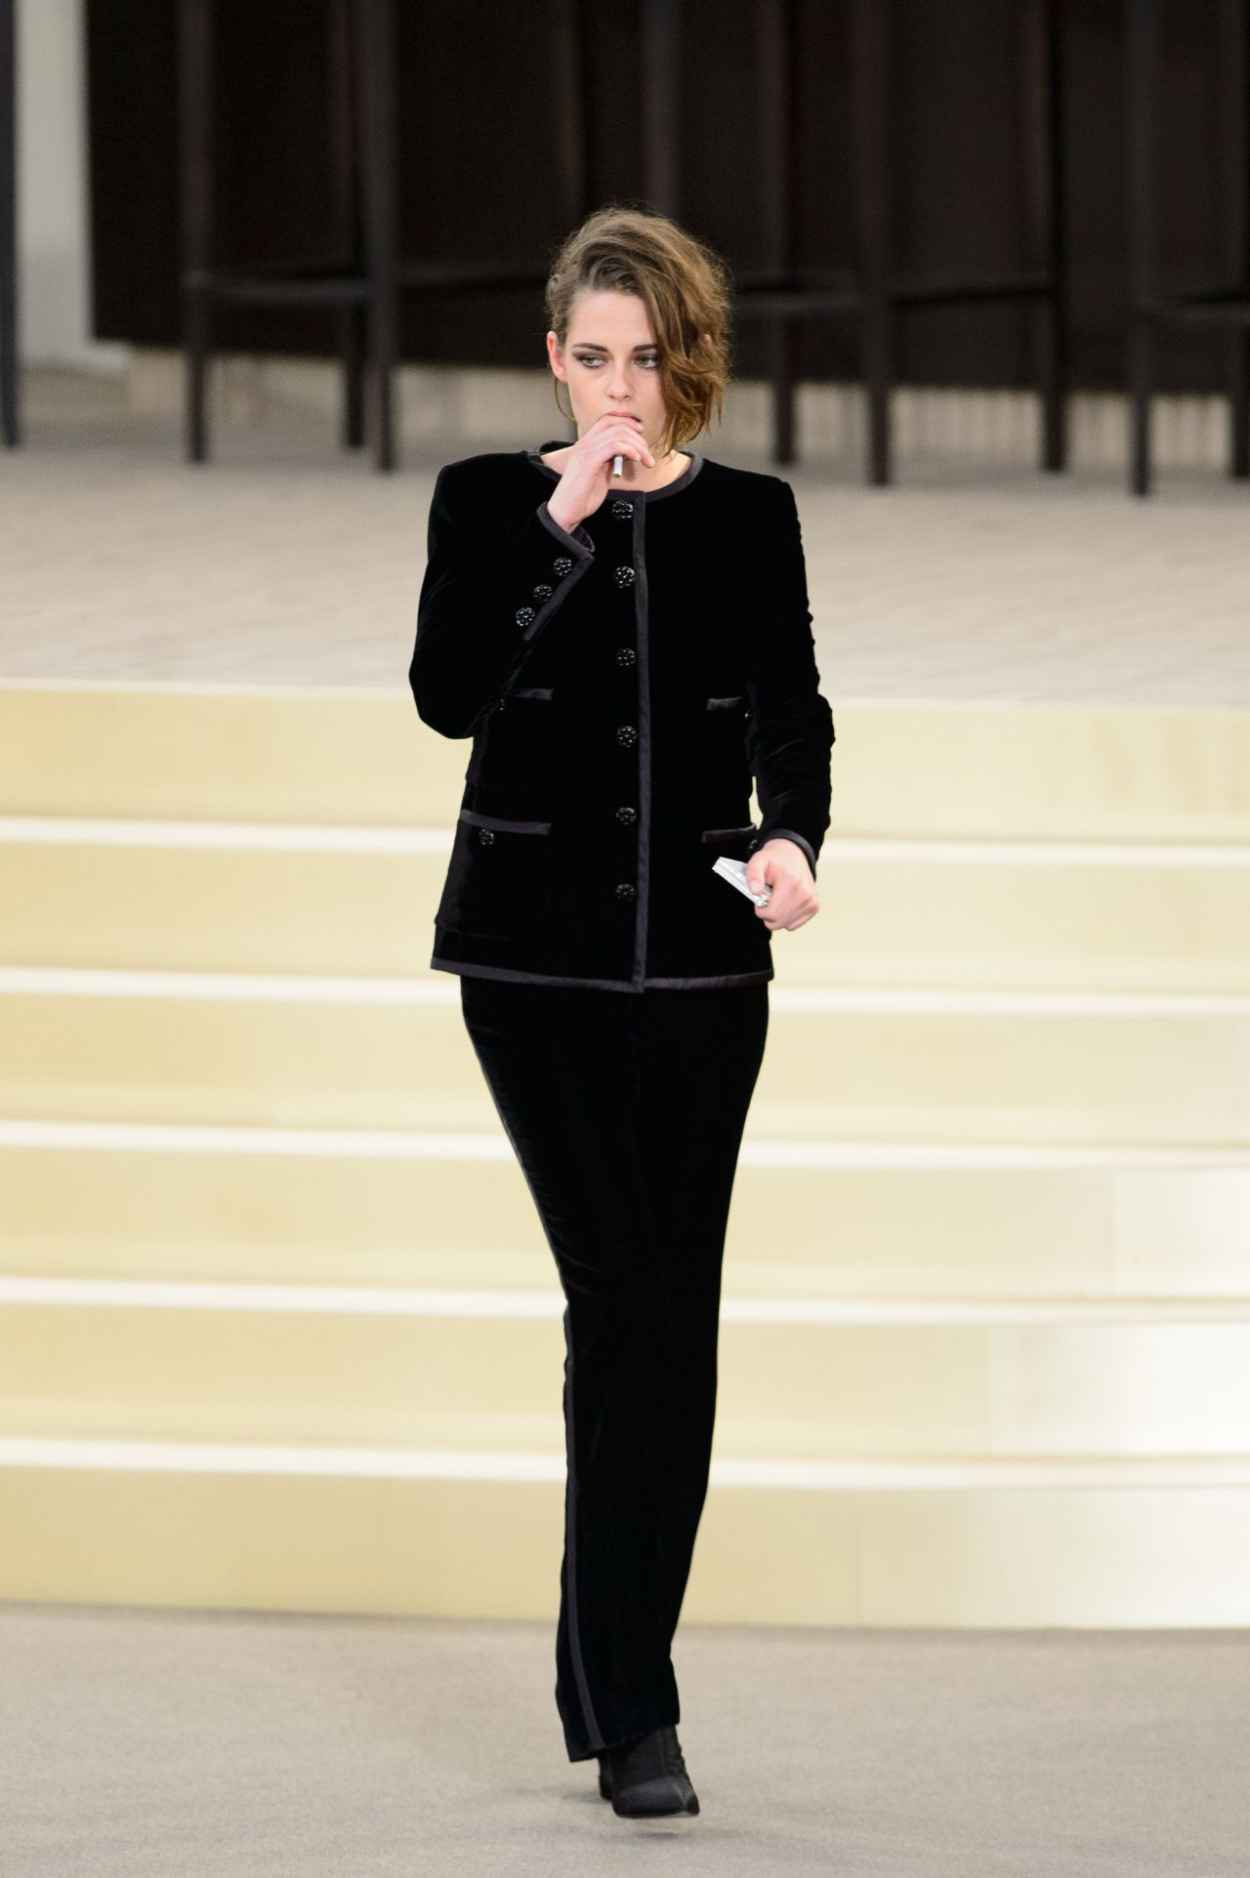 Kristen Stewart Chanel Fashion Show In Paris July 2015